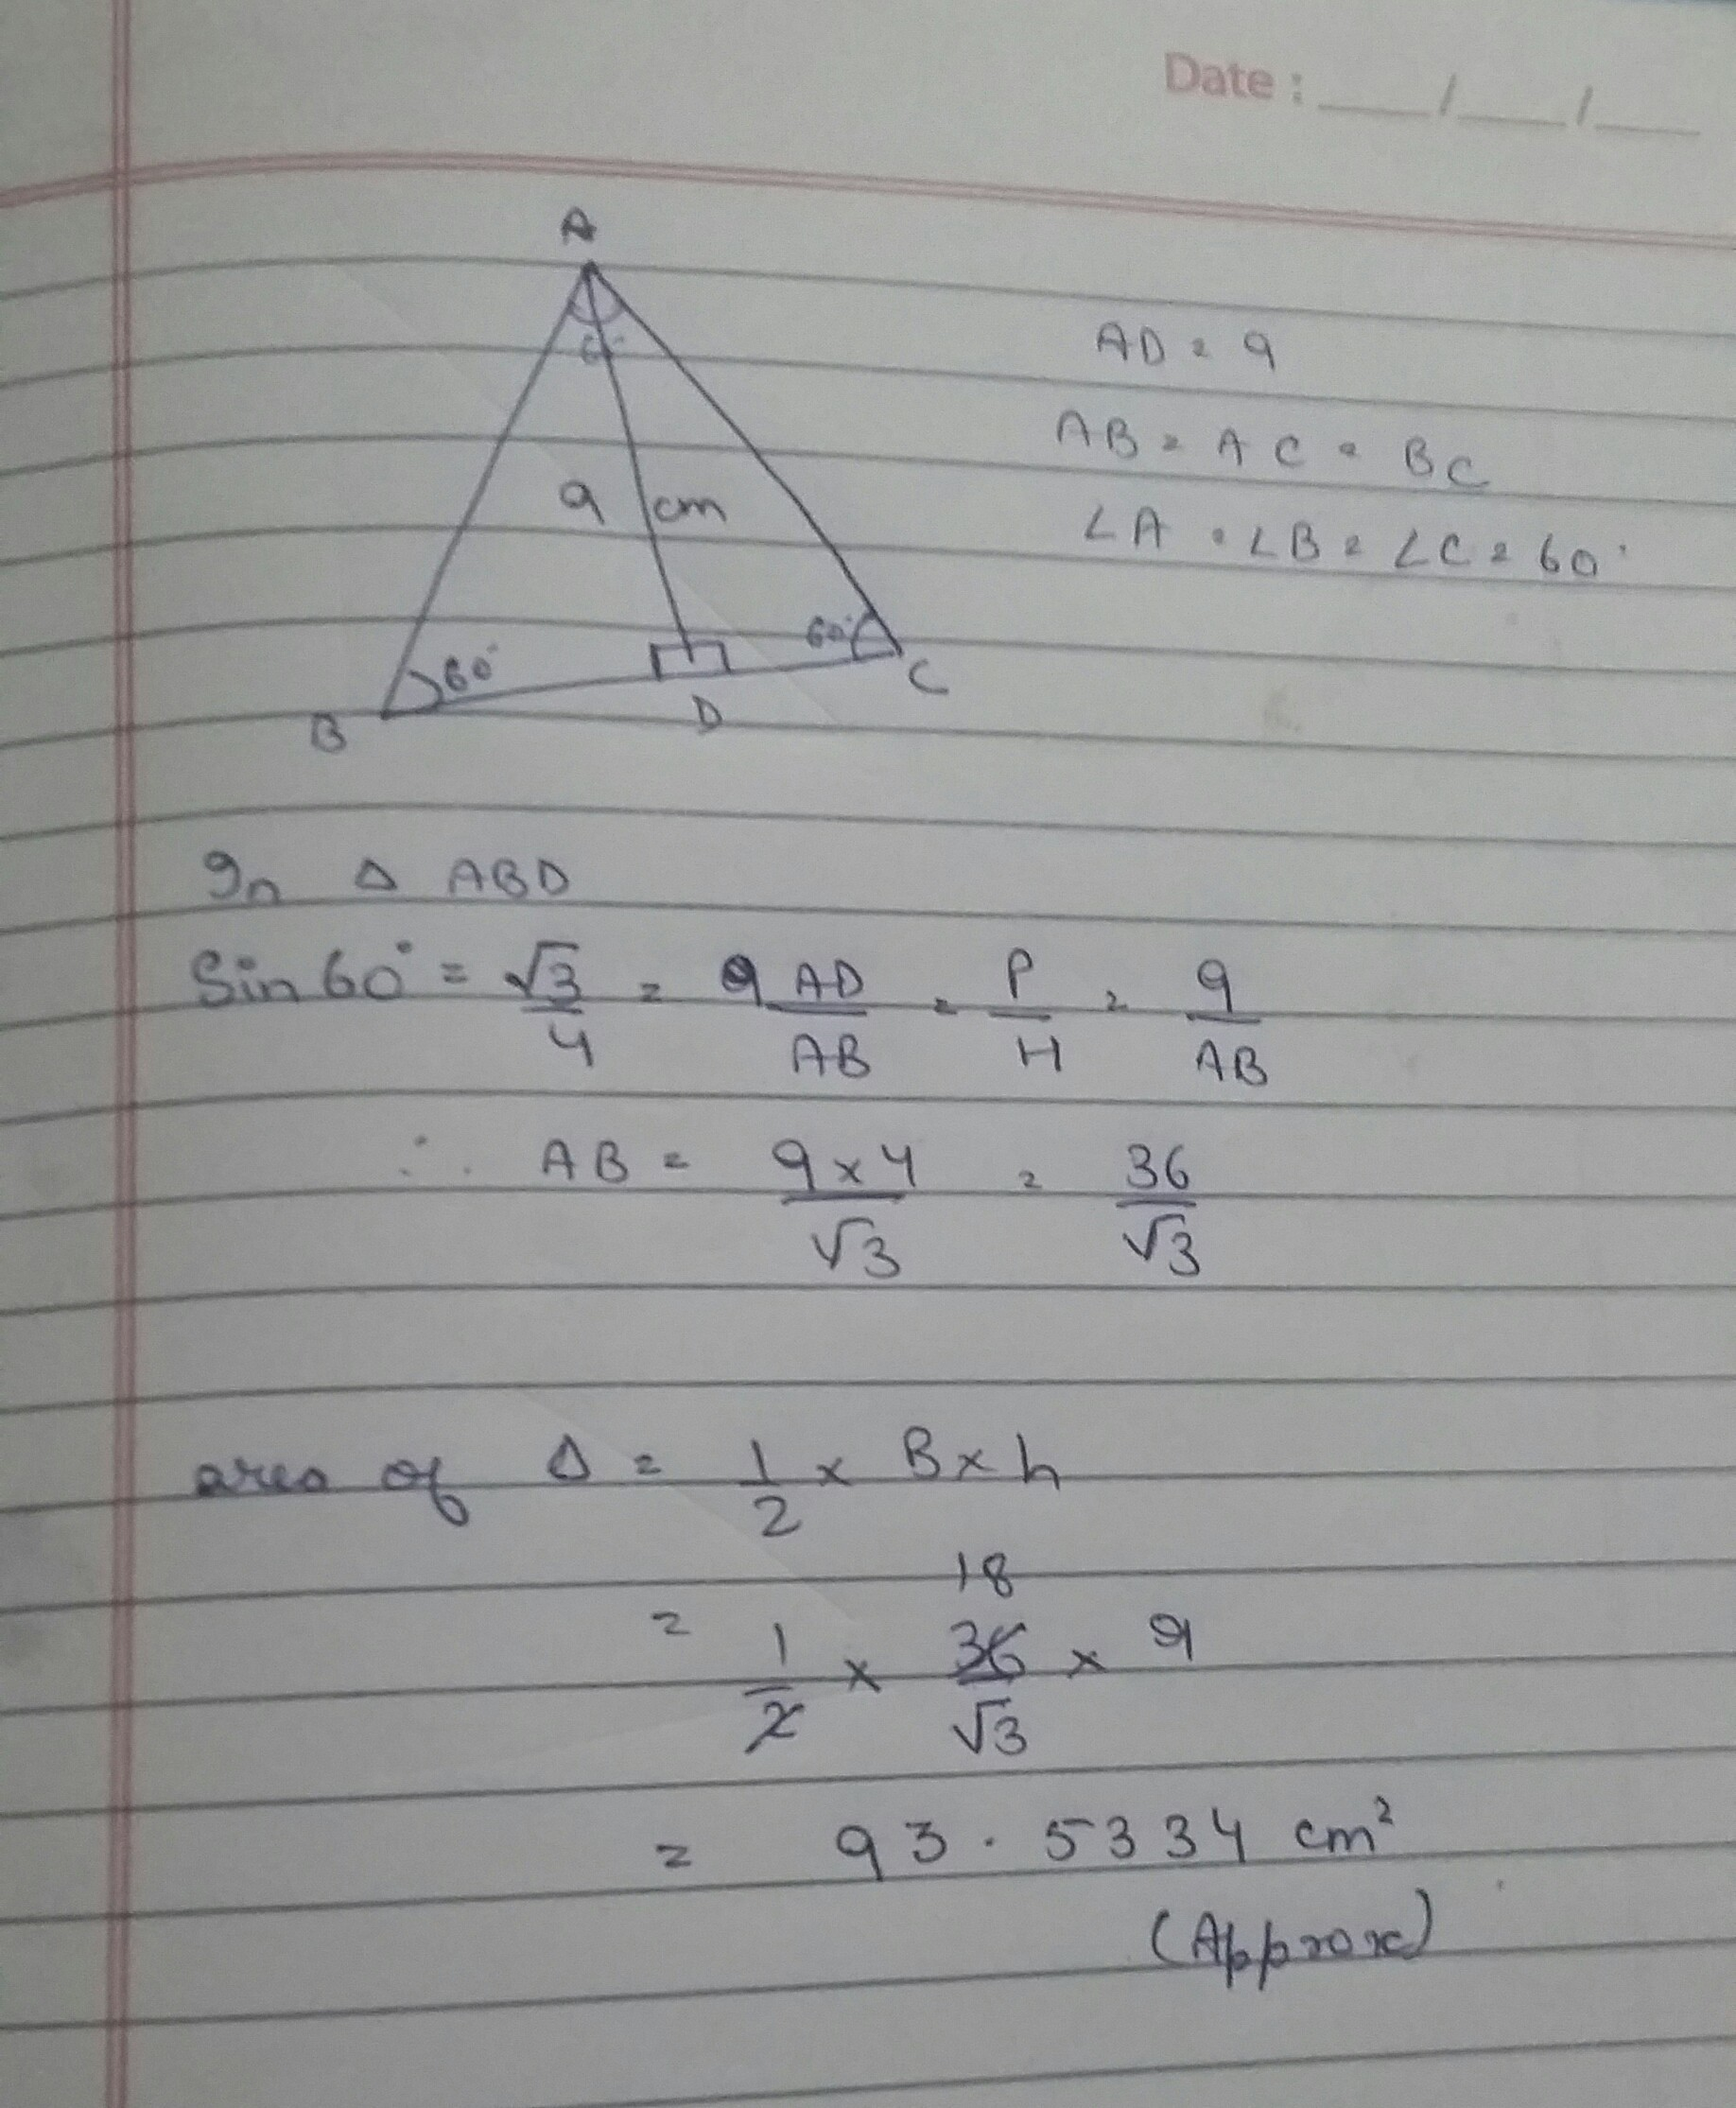 The Height Of An Equilateral Triangle Measures 9 Cm Find Its Area